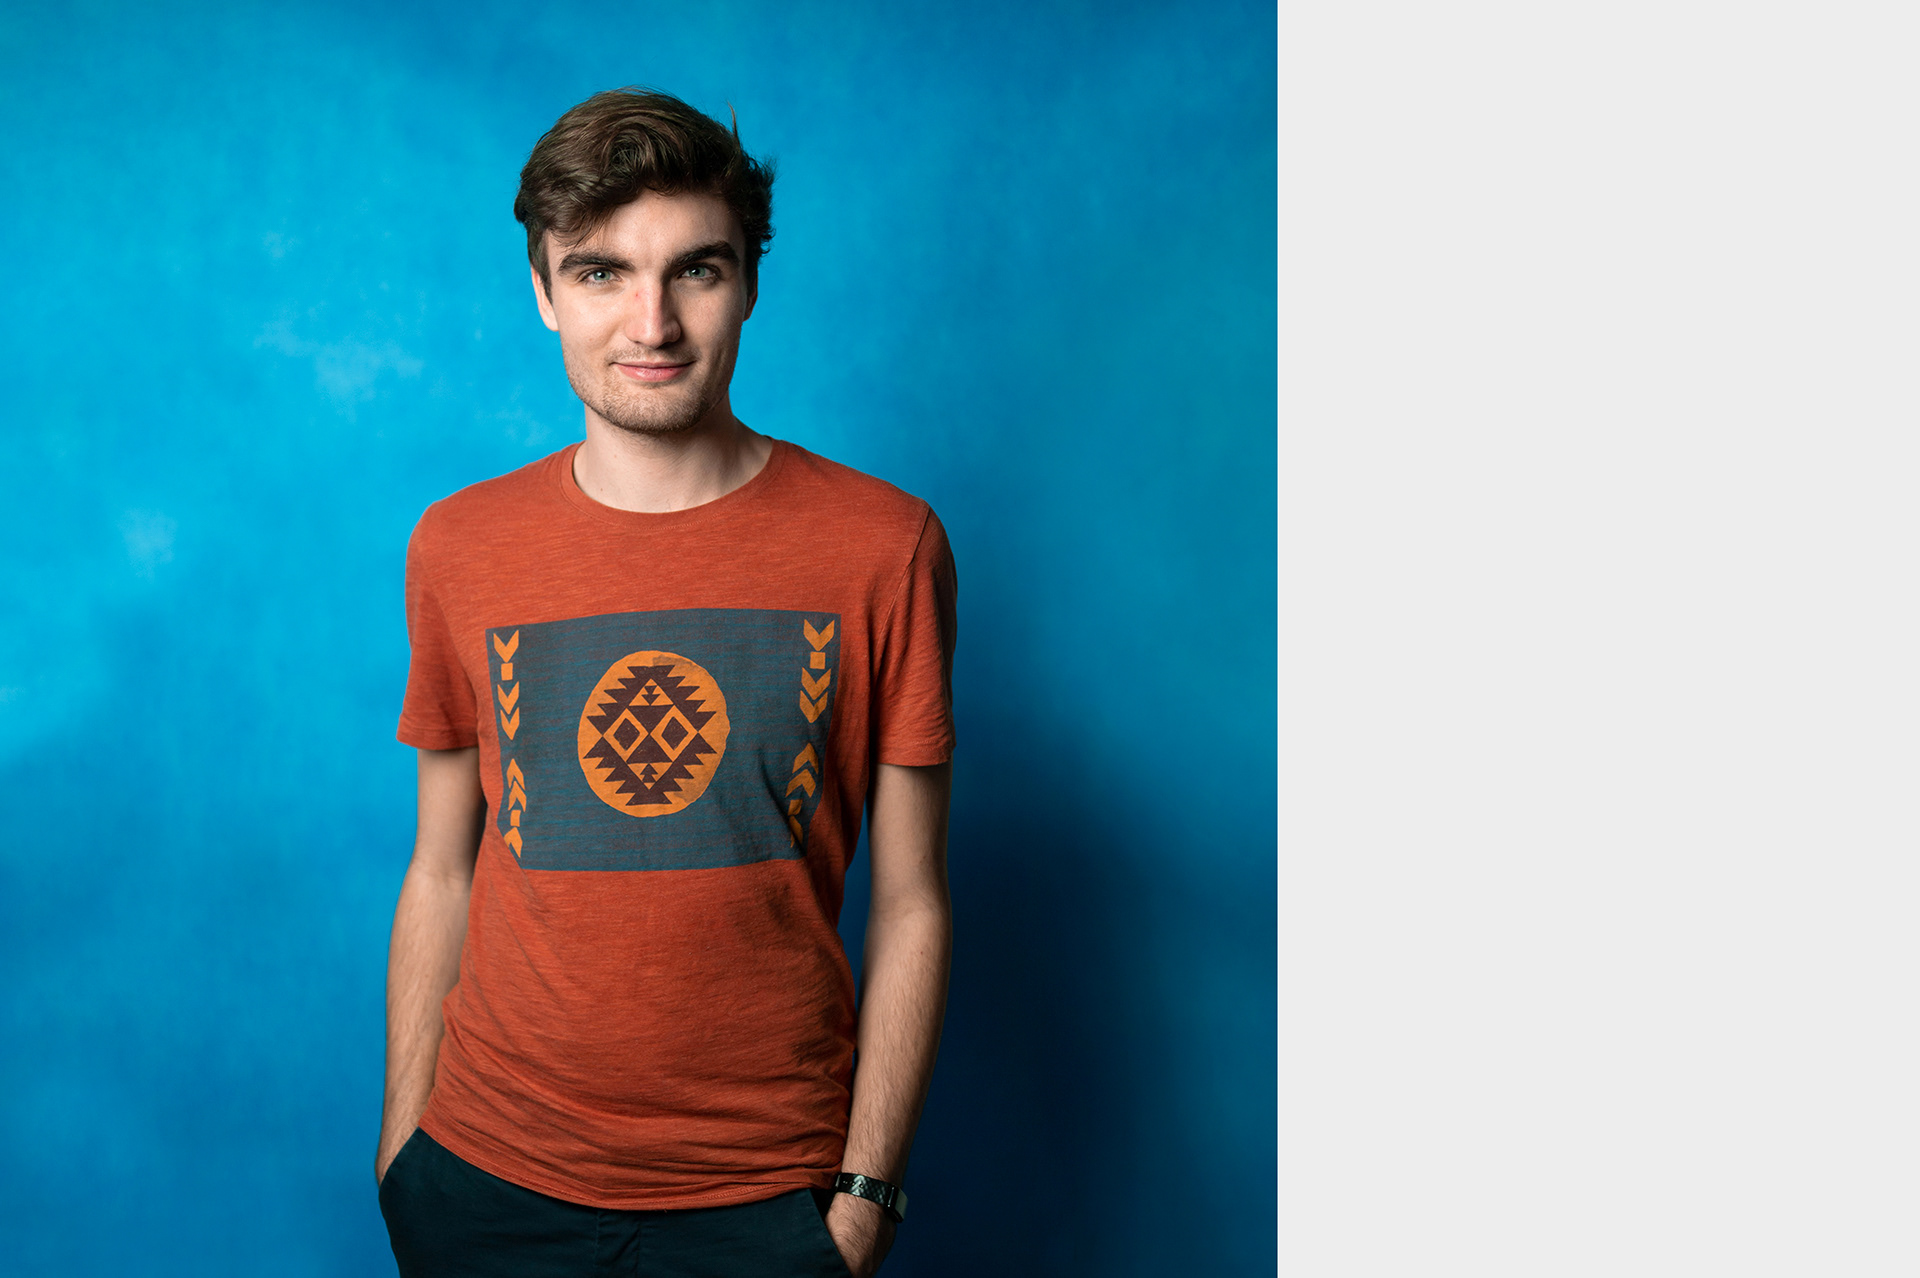 Michal, studio portrait of young male volunteer in front of blue background